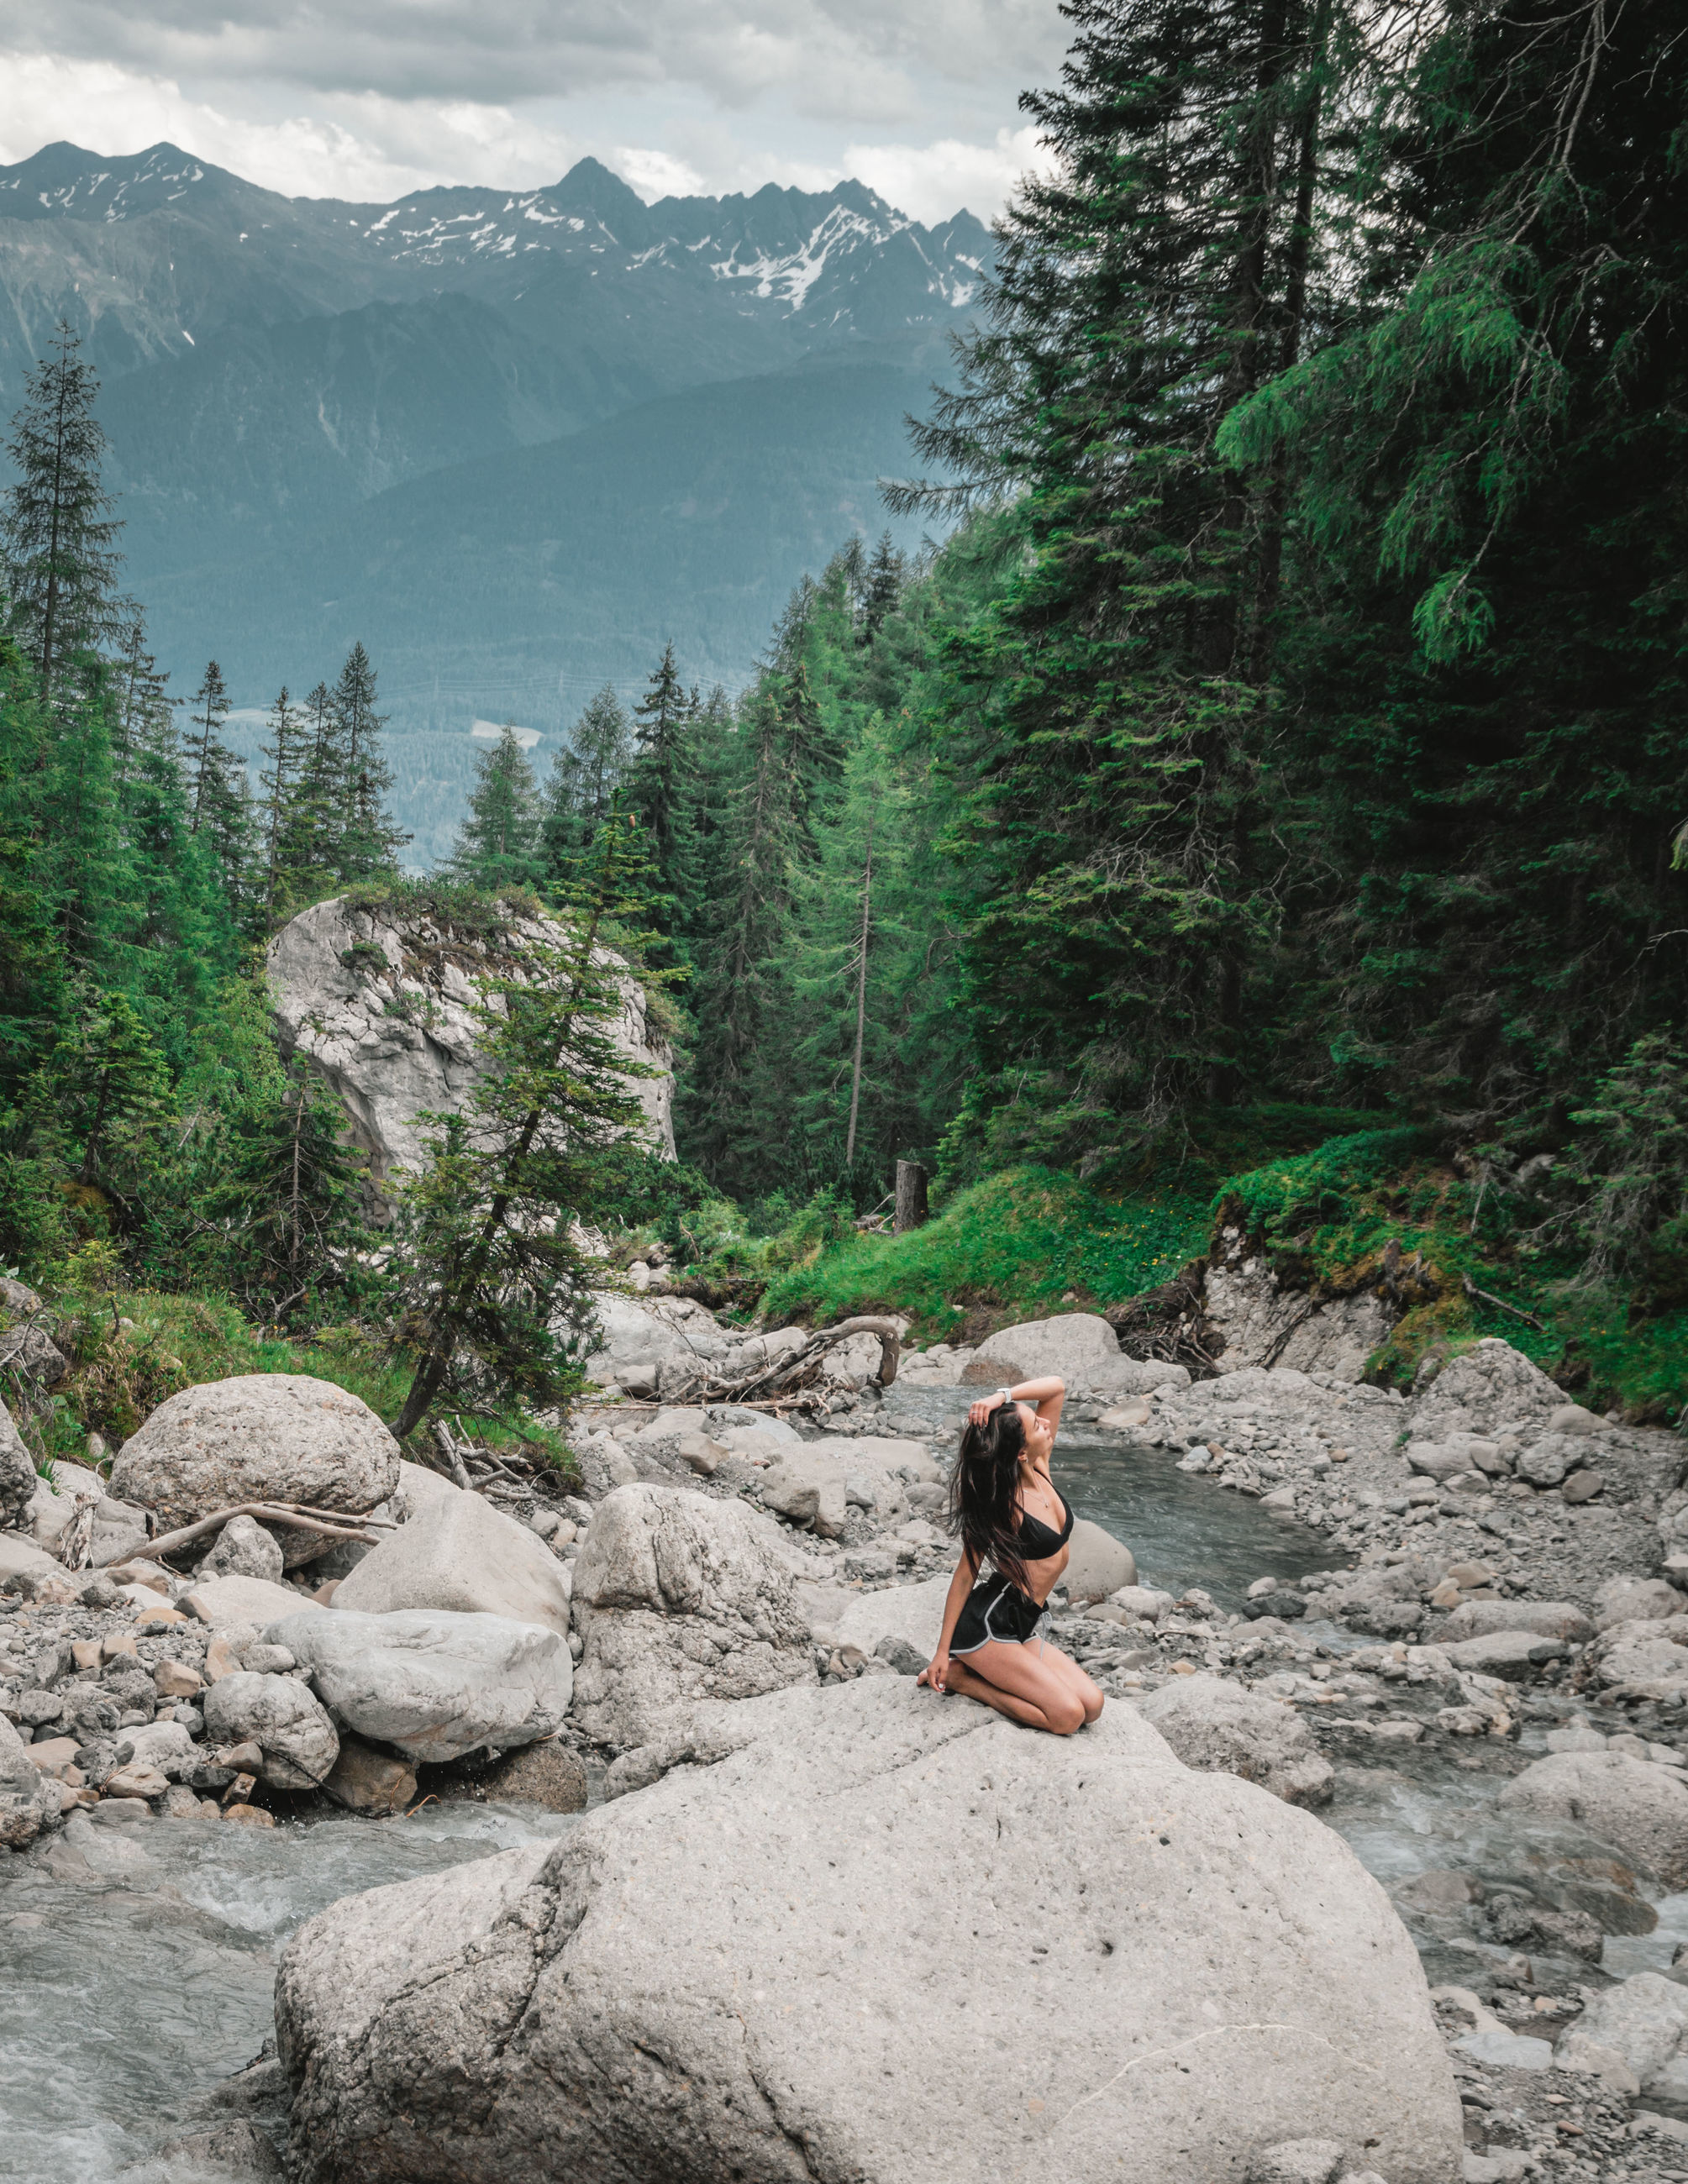 leisure activity, one person, mountain, sitting, tree, beauty in nature, nature, plant, adult, rock, lifestyles, scenics - nature, land, women, rock - object, full length, solid, mountain range, tranquility, outdoors